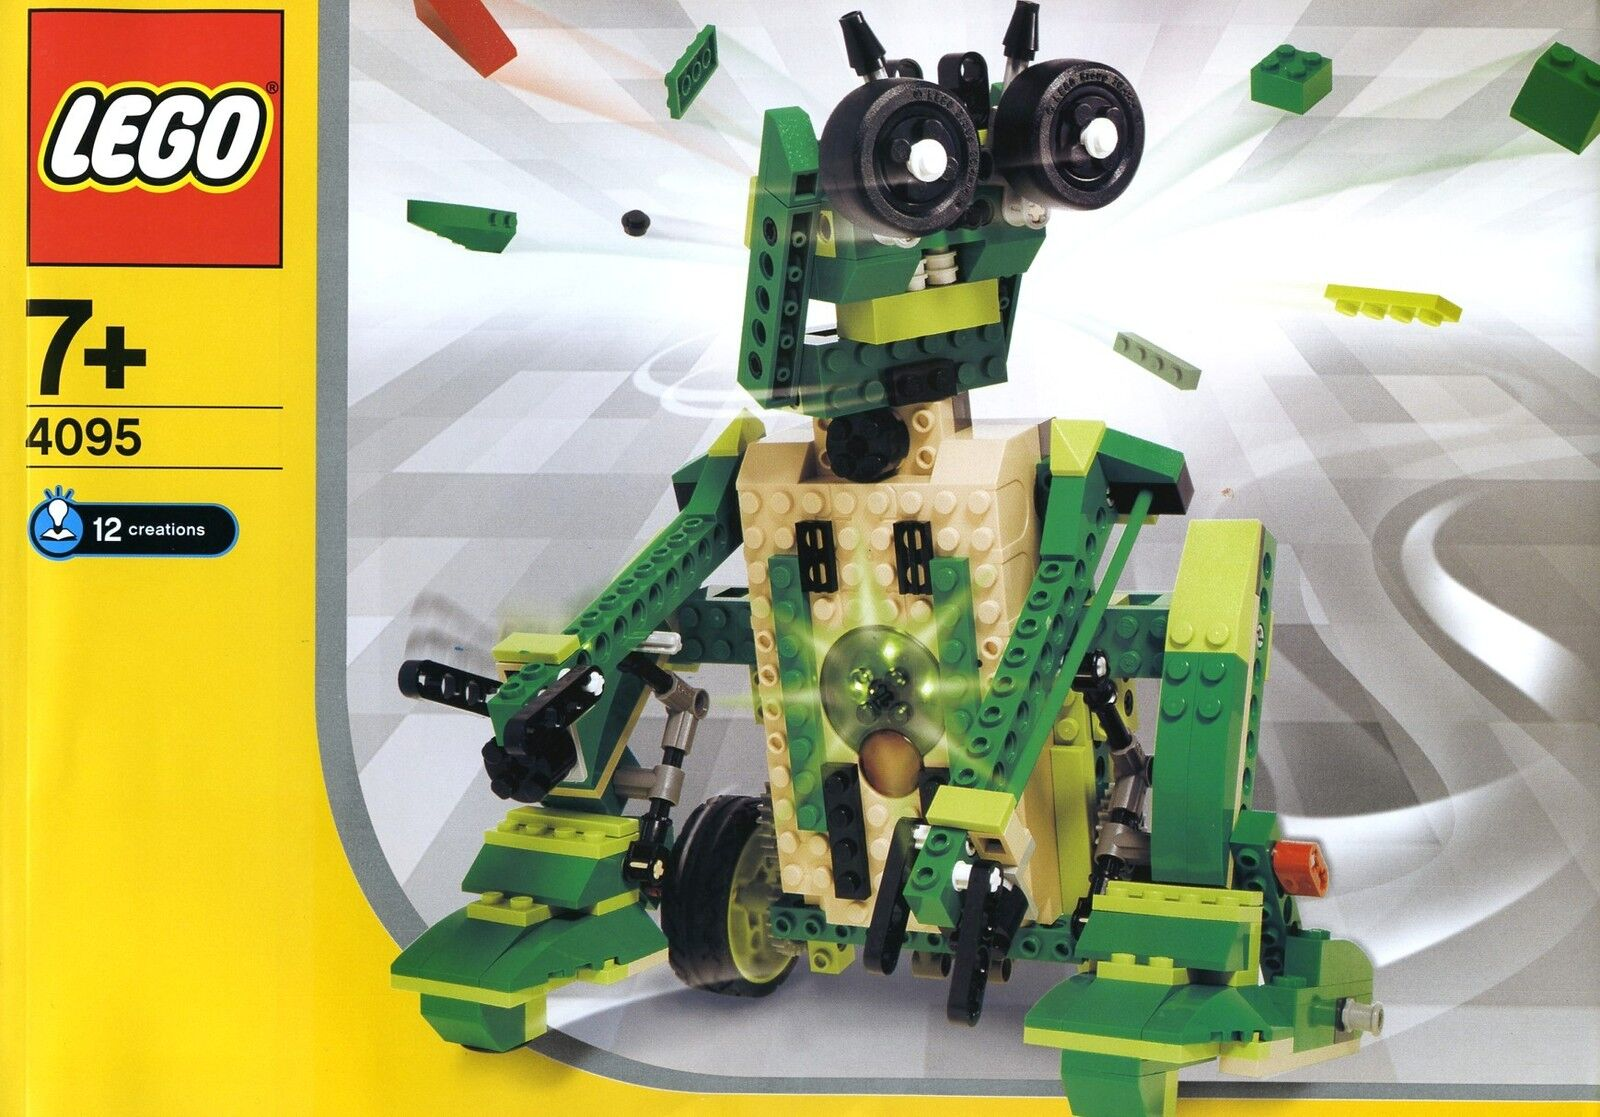 LEGO Inventer 4095 Record and Play NEW Sealed Set